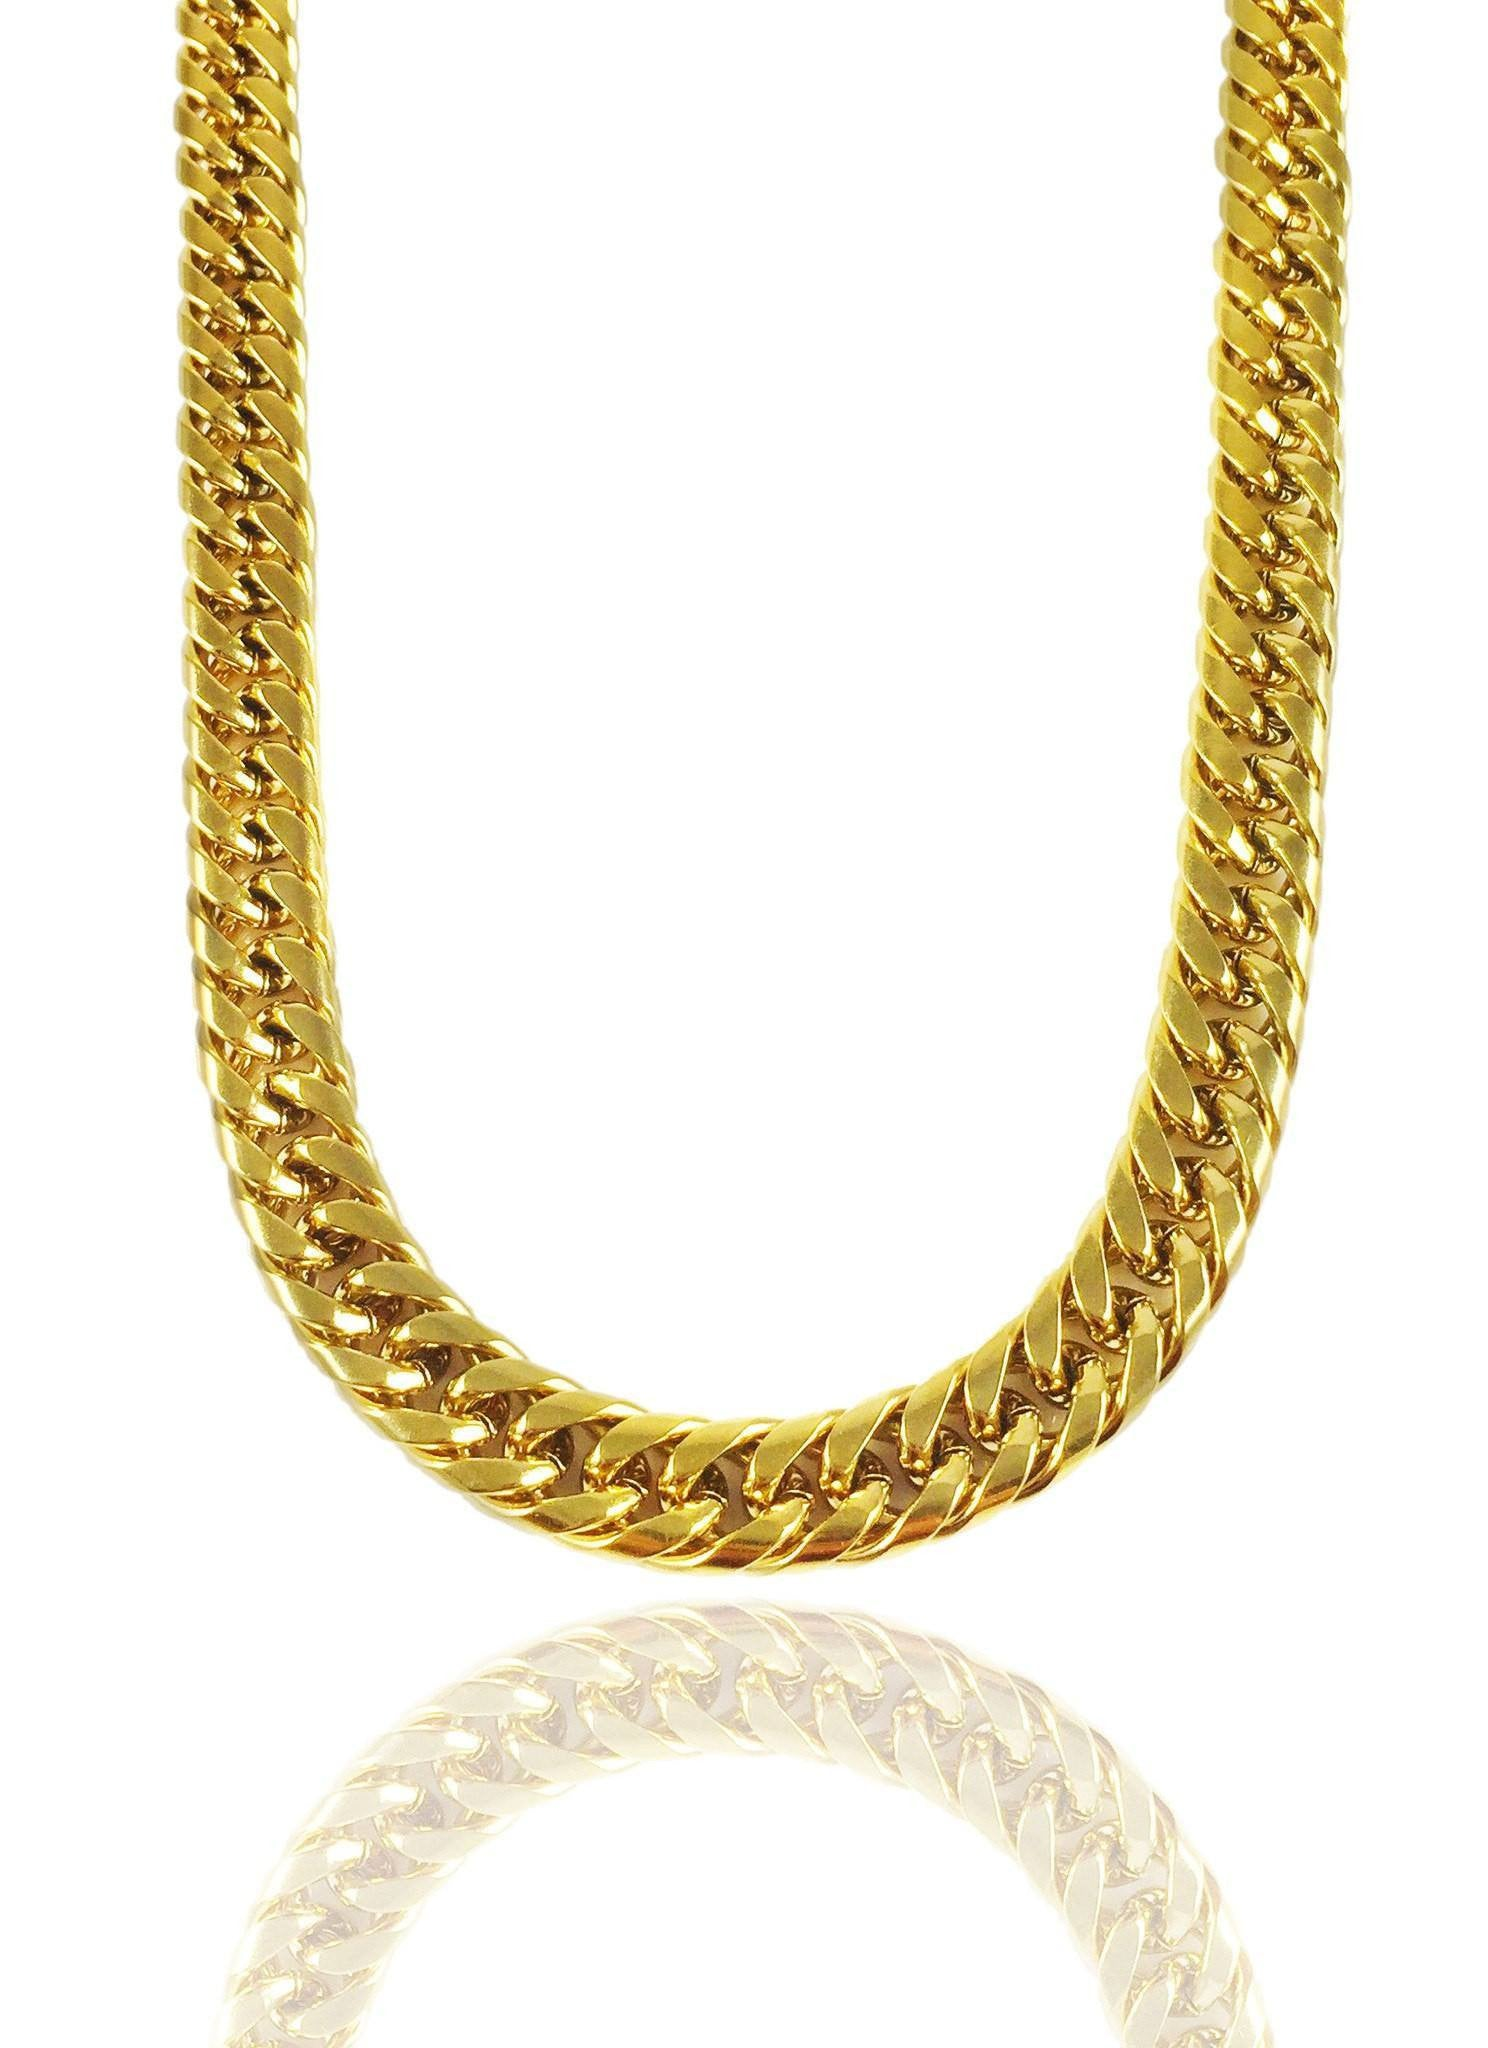 5183cf58fc9a9 The Cuban Link Chain x Gold